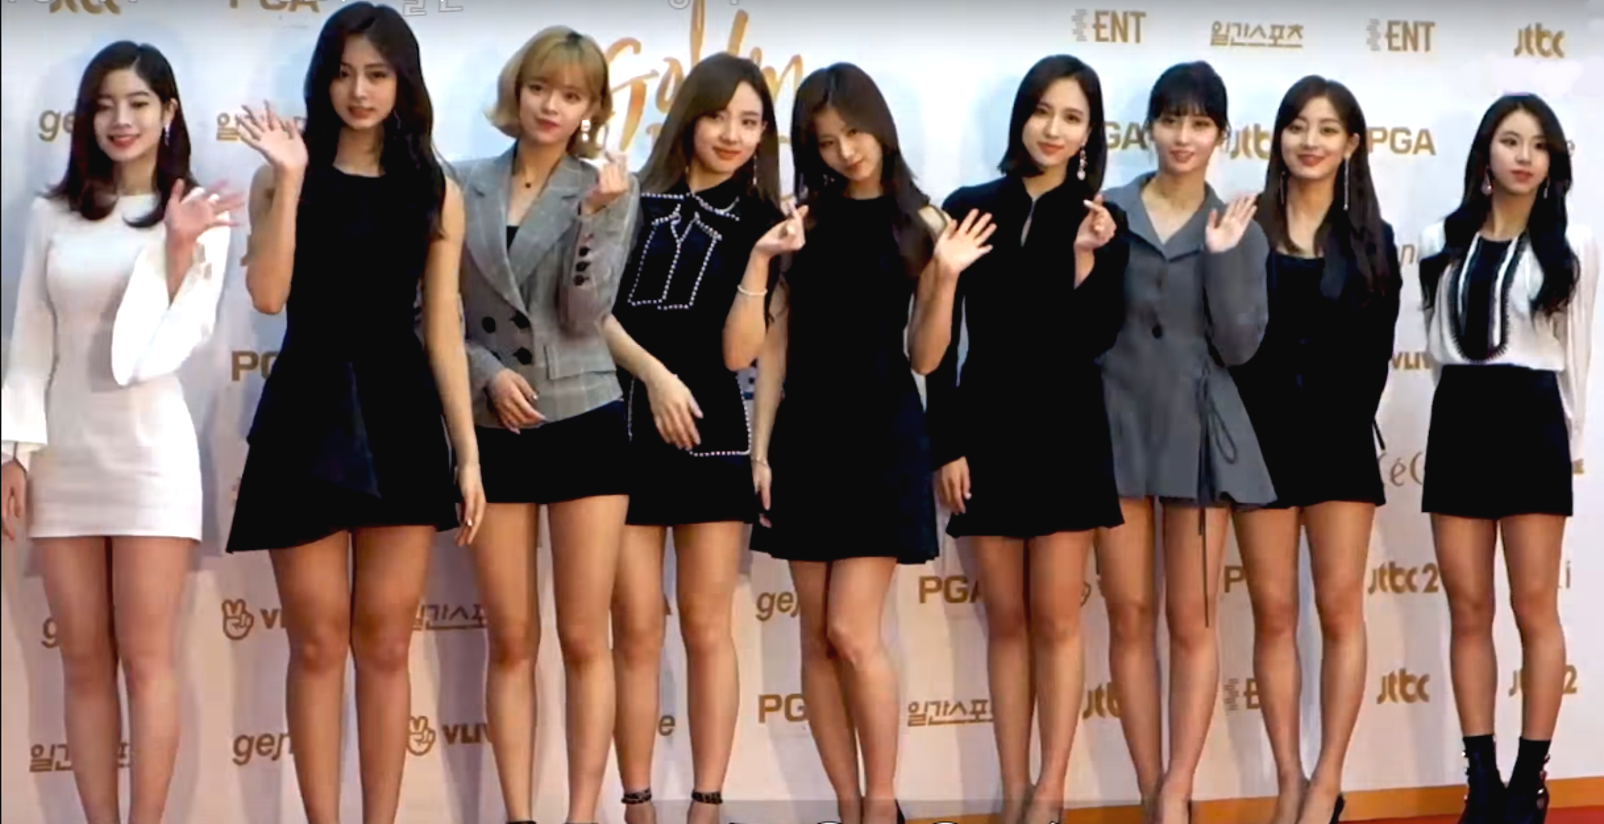 Twice On The Red Carpet Of The Golden Disk Awards On January 10